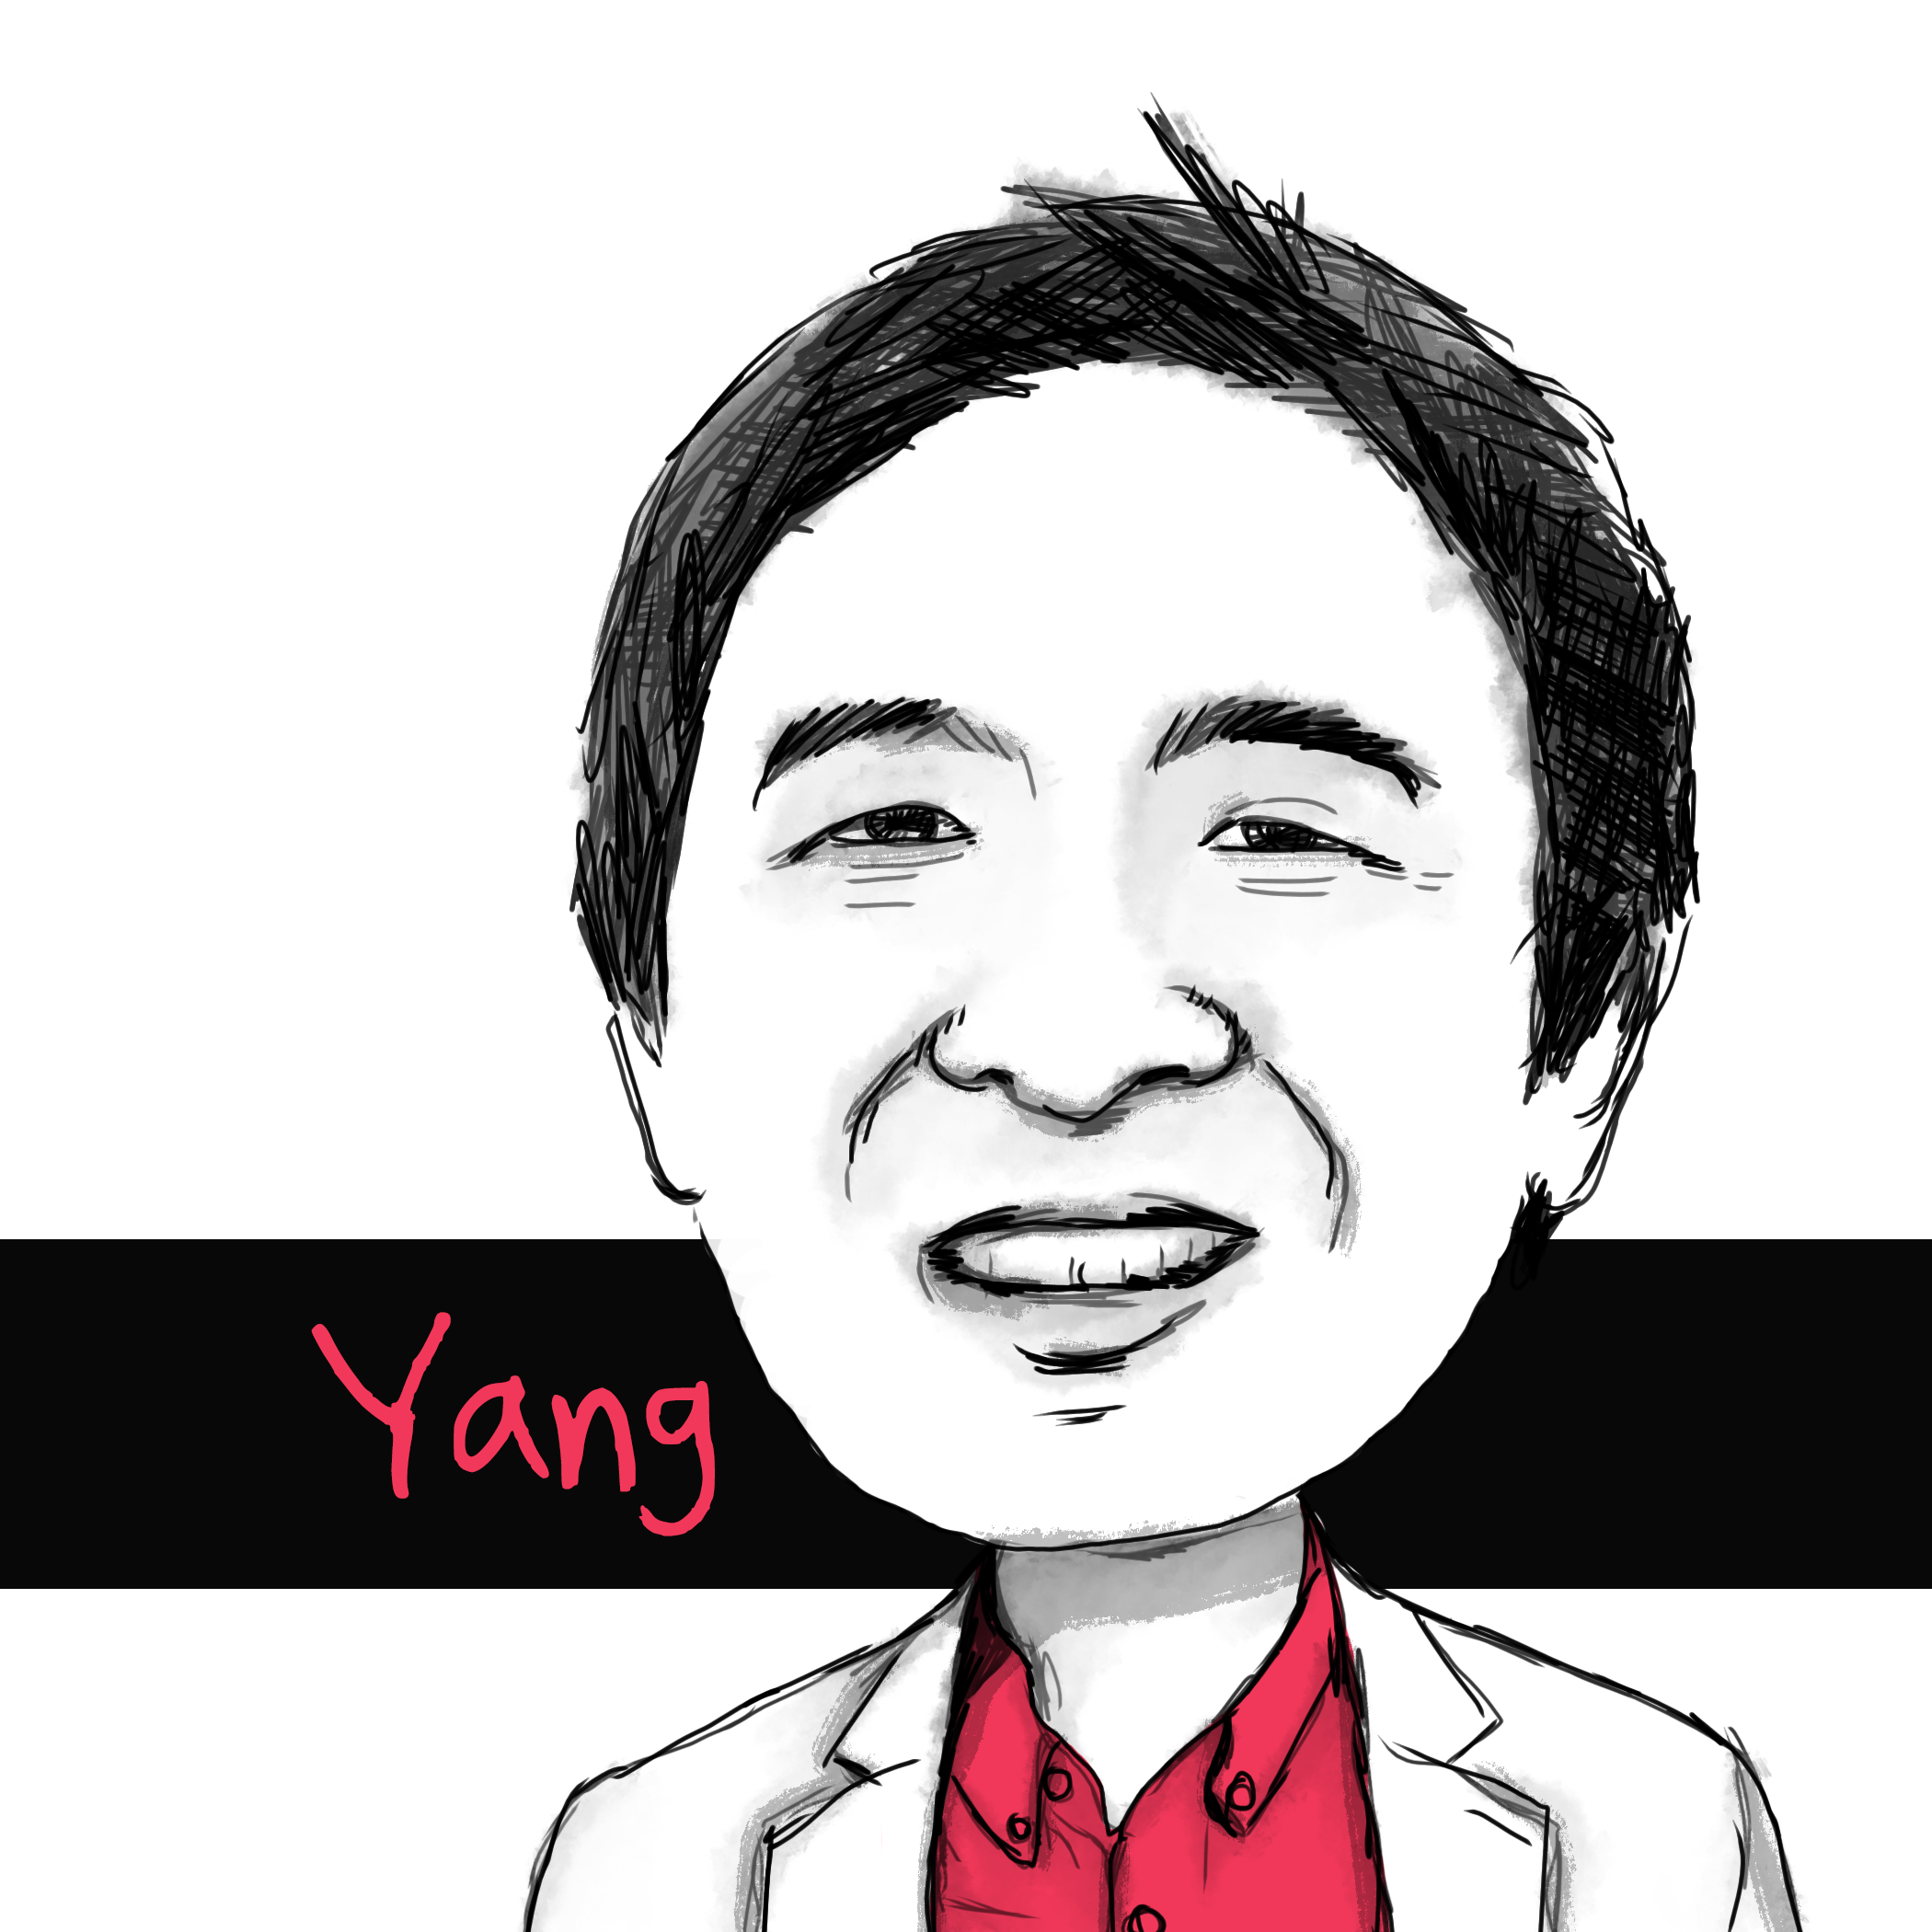 Andrew Yang - Humanity First - https://www.yang2020.com